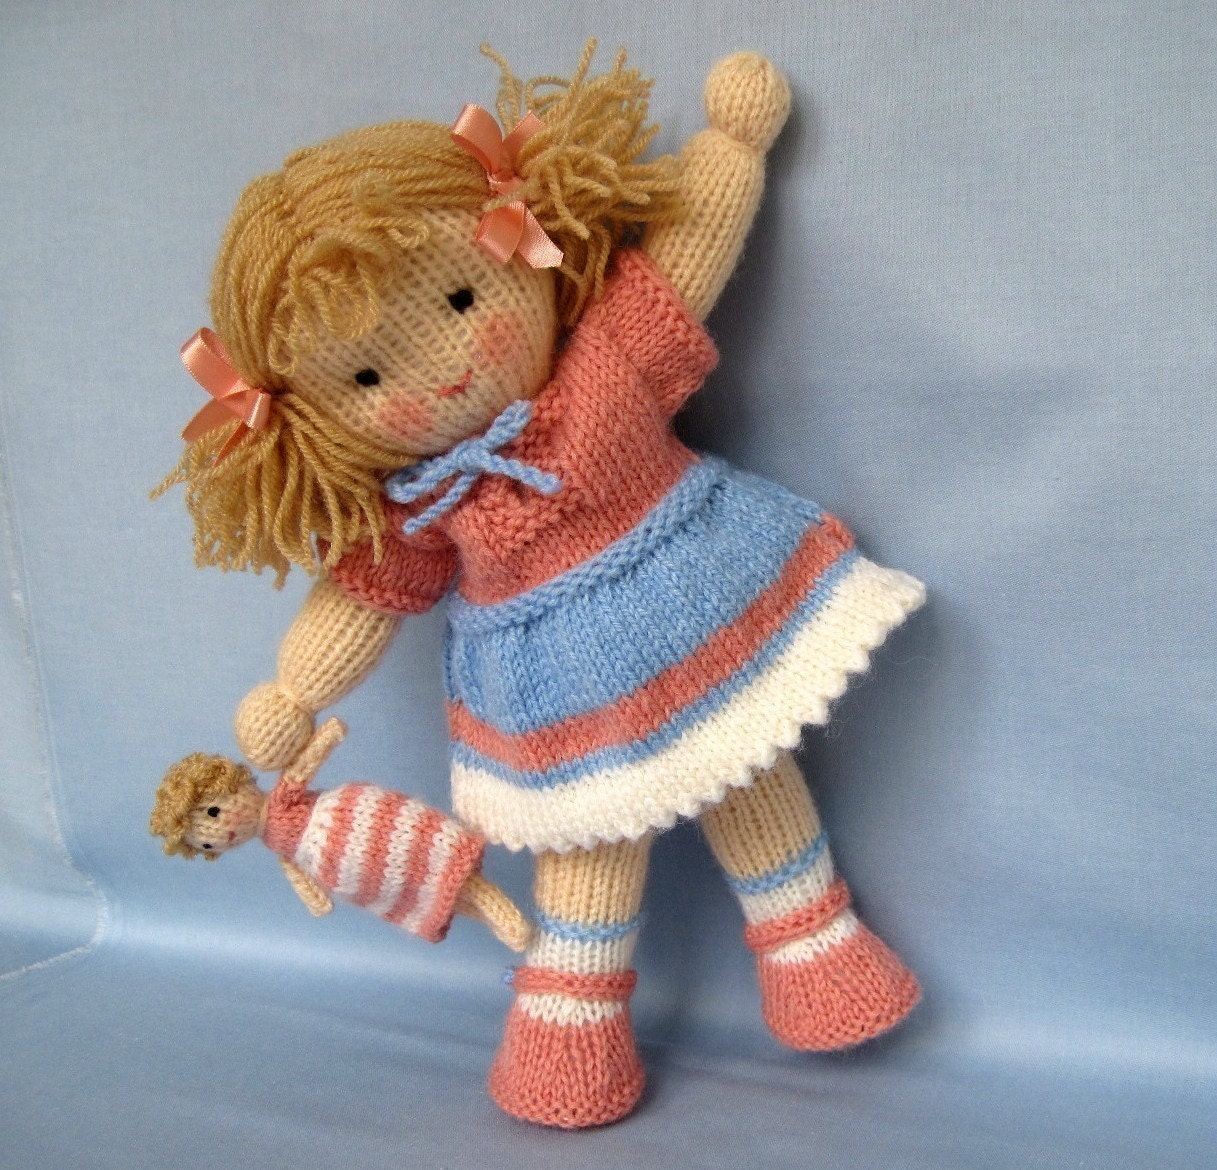 Free Knitted Doll Pattern : Lulu and little doll knitting pattern INSTANT DOWNLOAD